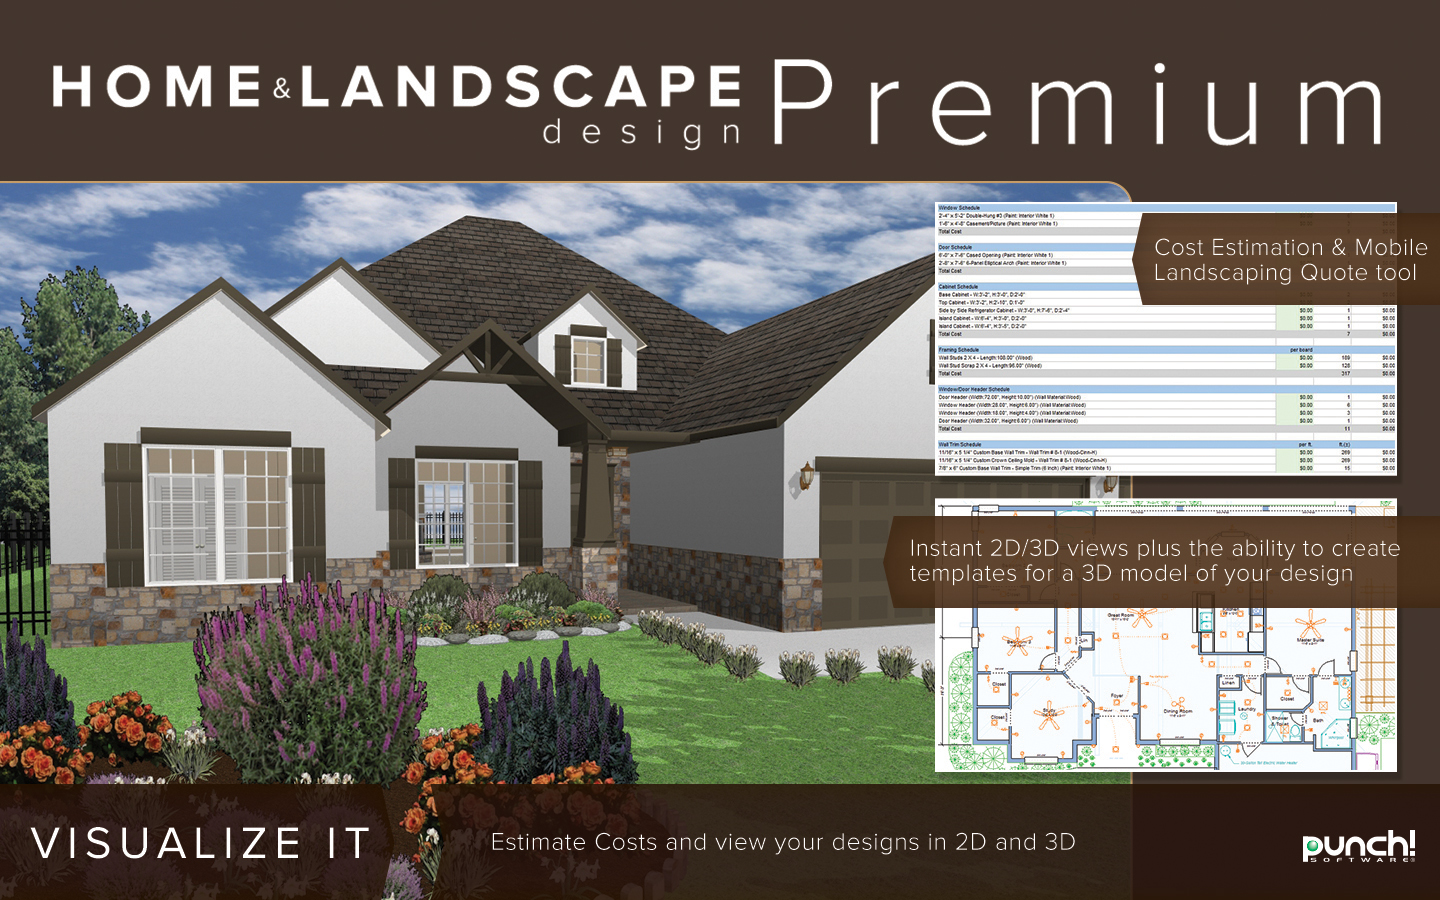 Punch home landscape design premium v19 home design Windows home design software